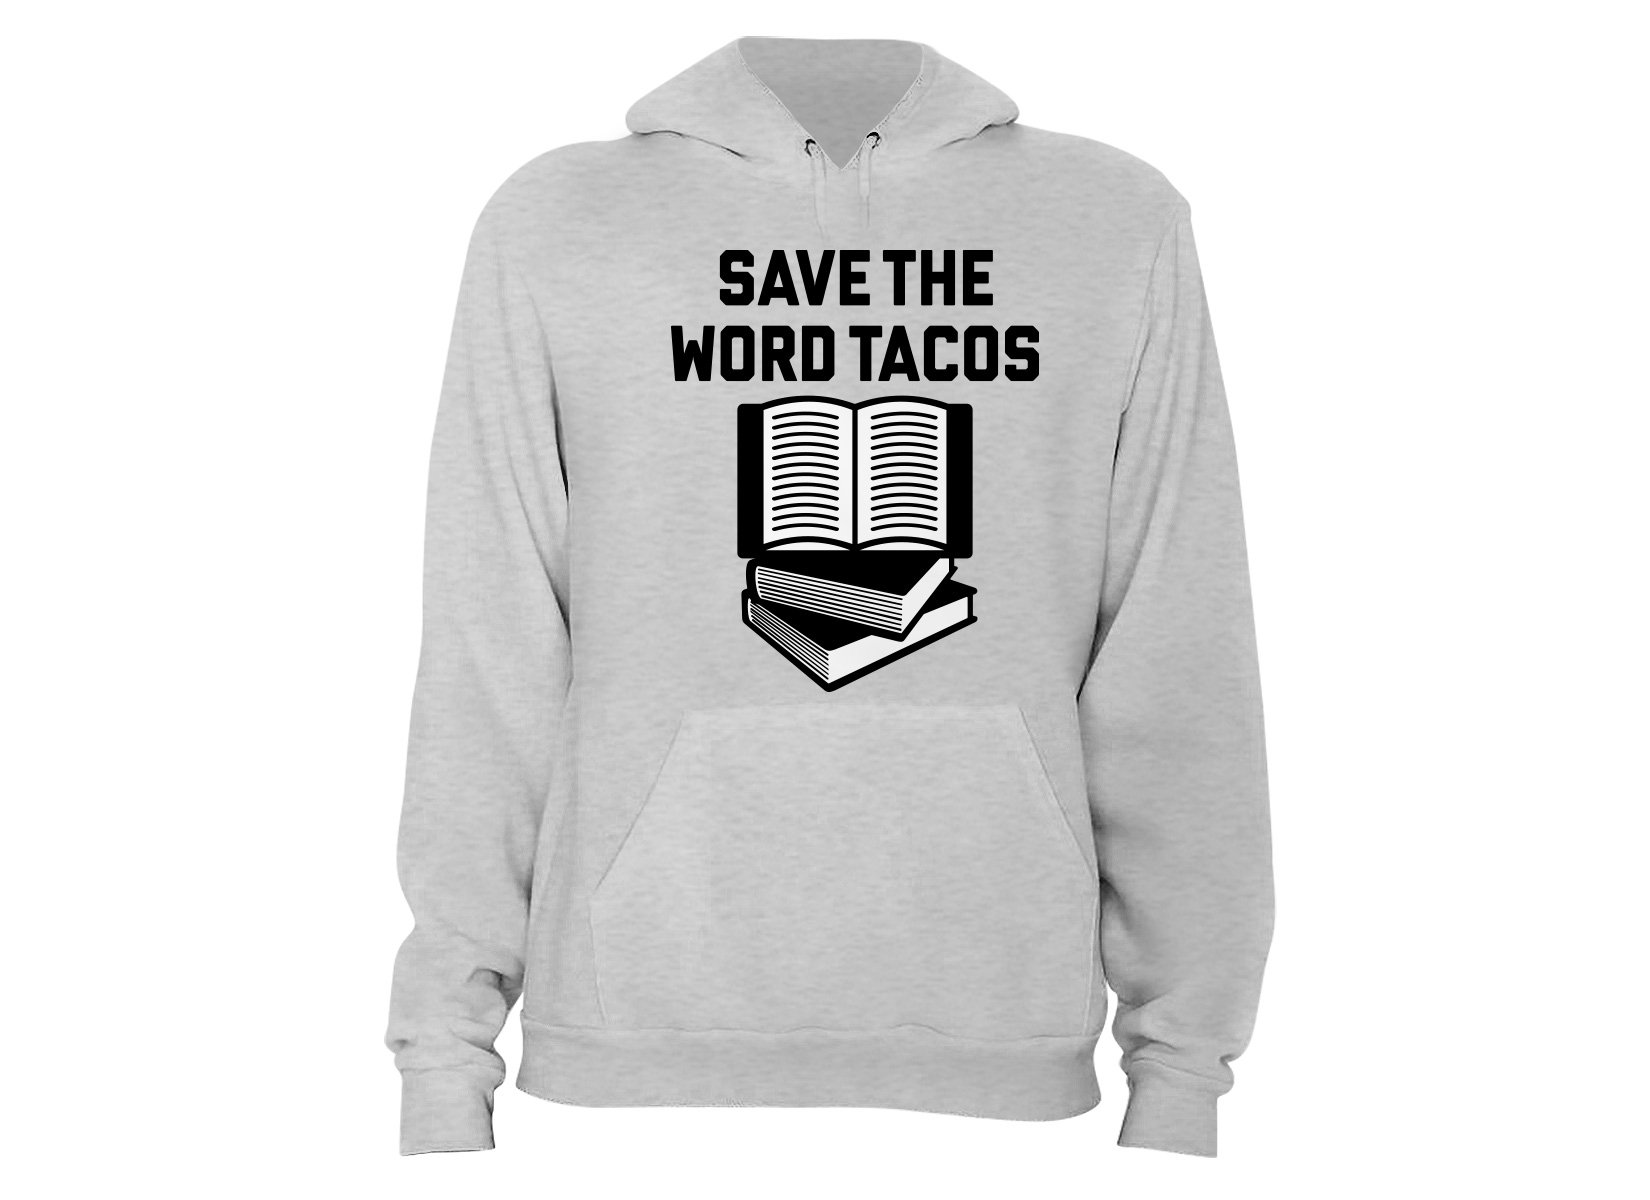 Save The Word Tacos on Hoodie